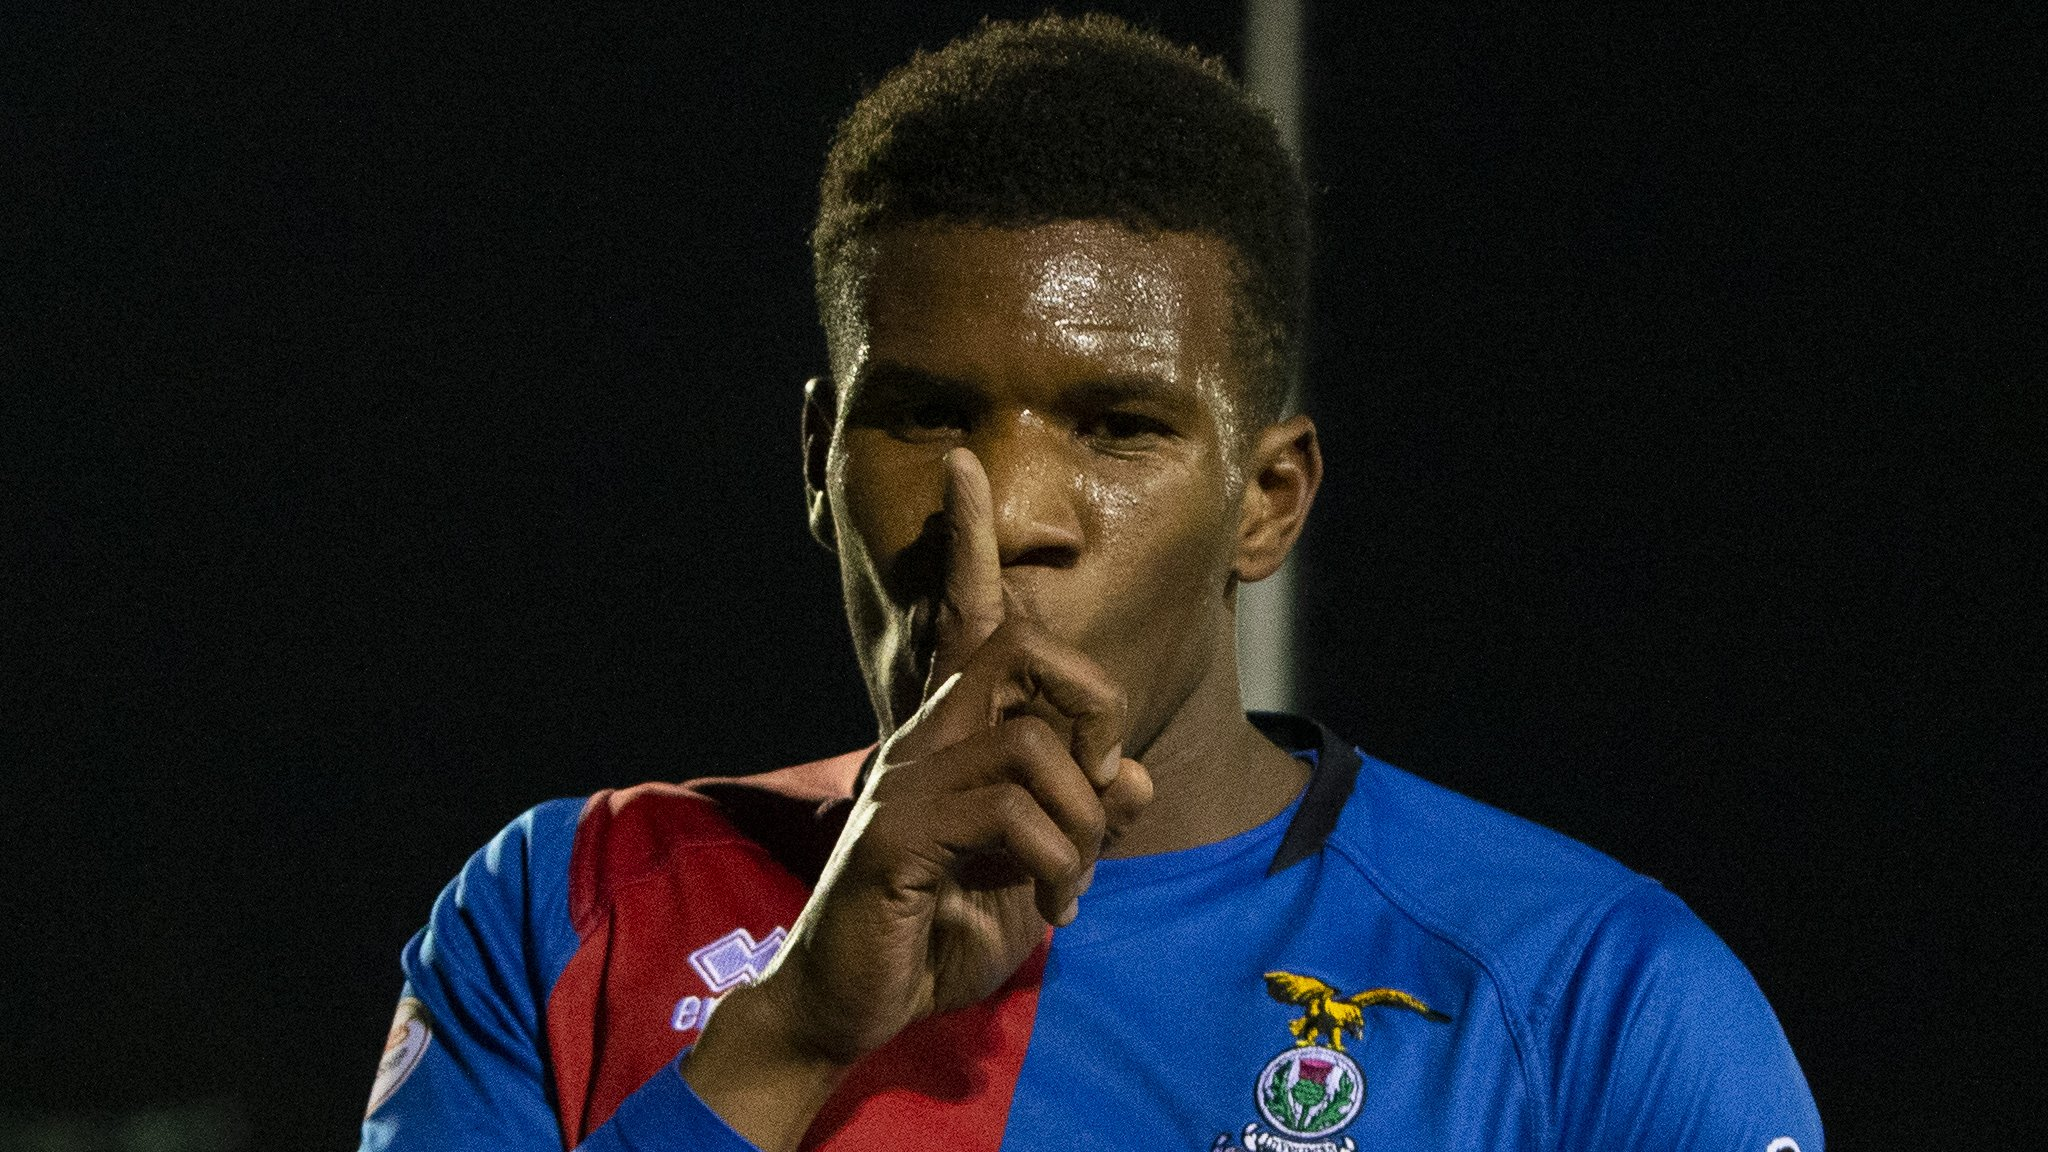 Inverness CT 2-2 Dunfermline Athletic